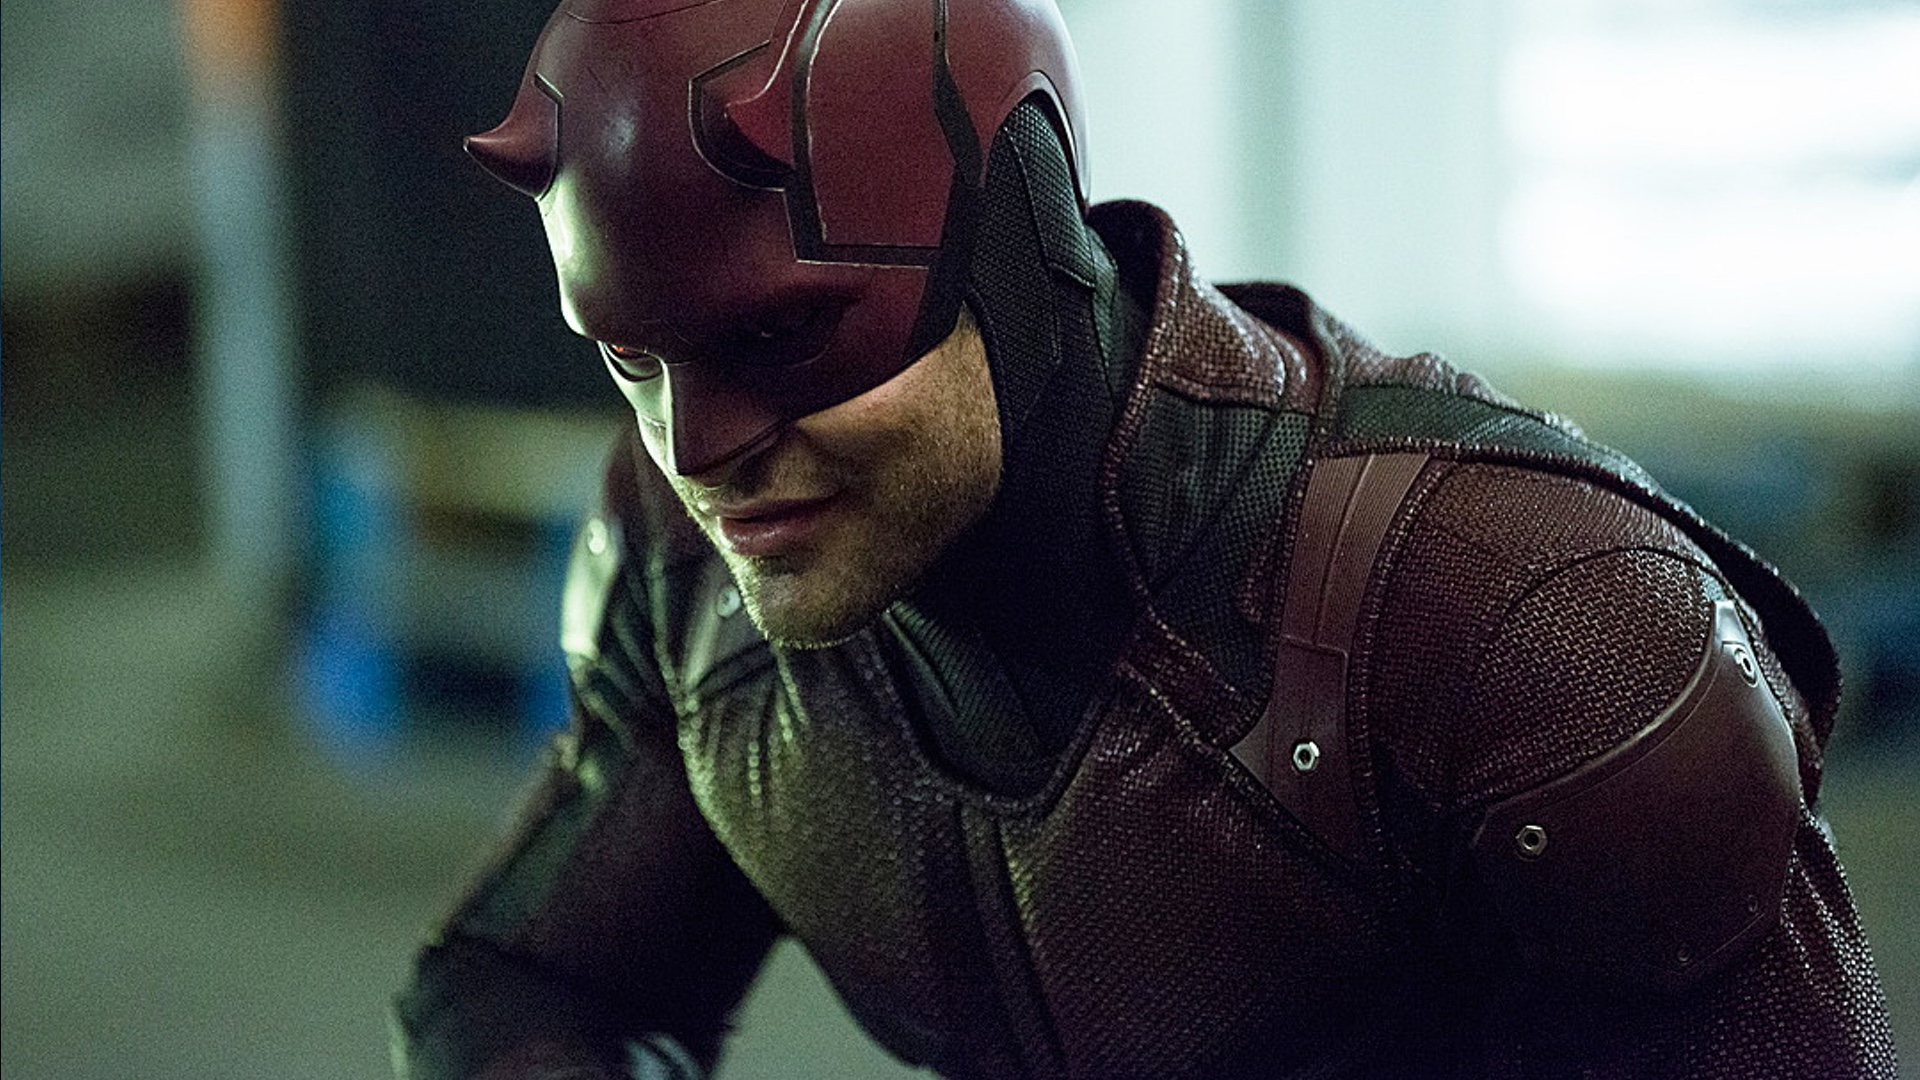 Charlie cox teases daredevil season 3 born again story arc if you havent watched the defenders yet there are things discussed in this article that you might not want to know malvernweather Choice Image